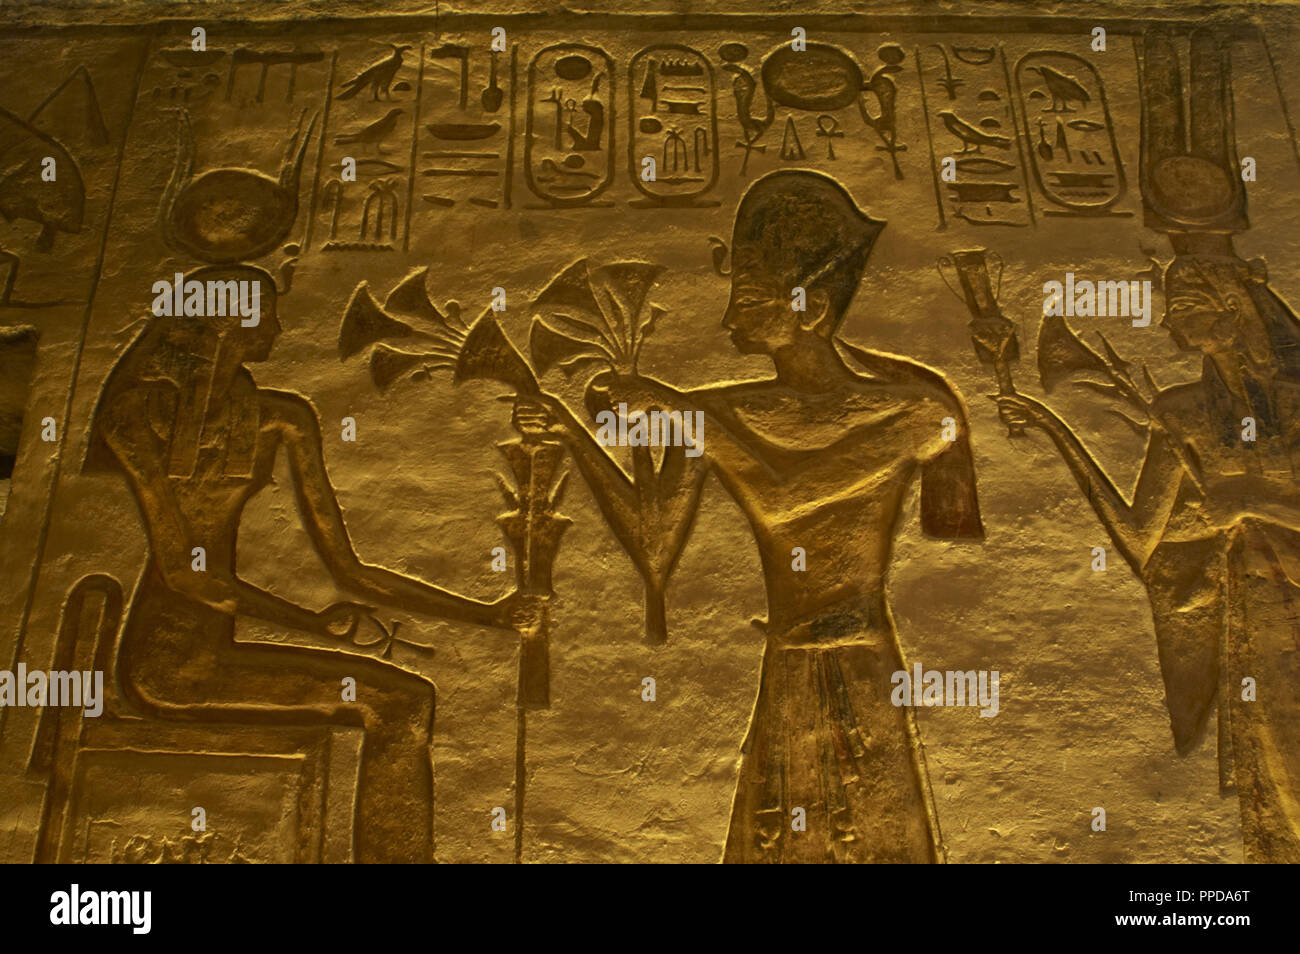 Egyptian art. Great Temple of Ramses II. 19th Dynasty. Relief depicting pharaoh Ramses II with two gods. 19th Dynasty. New Kingdom. Abu Simbel. Egypt. Stock Photo